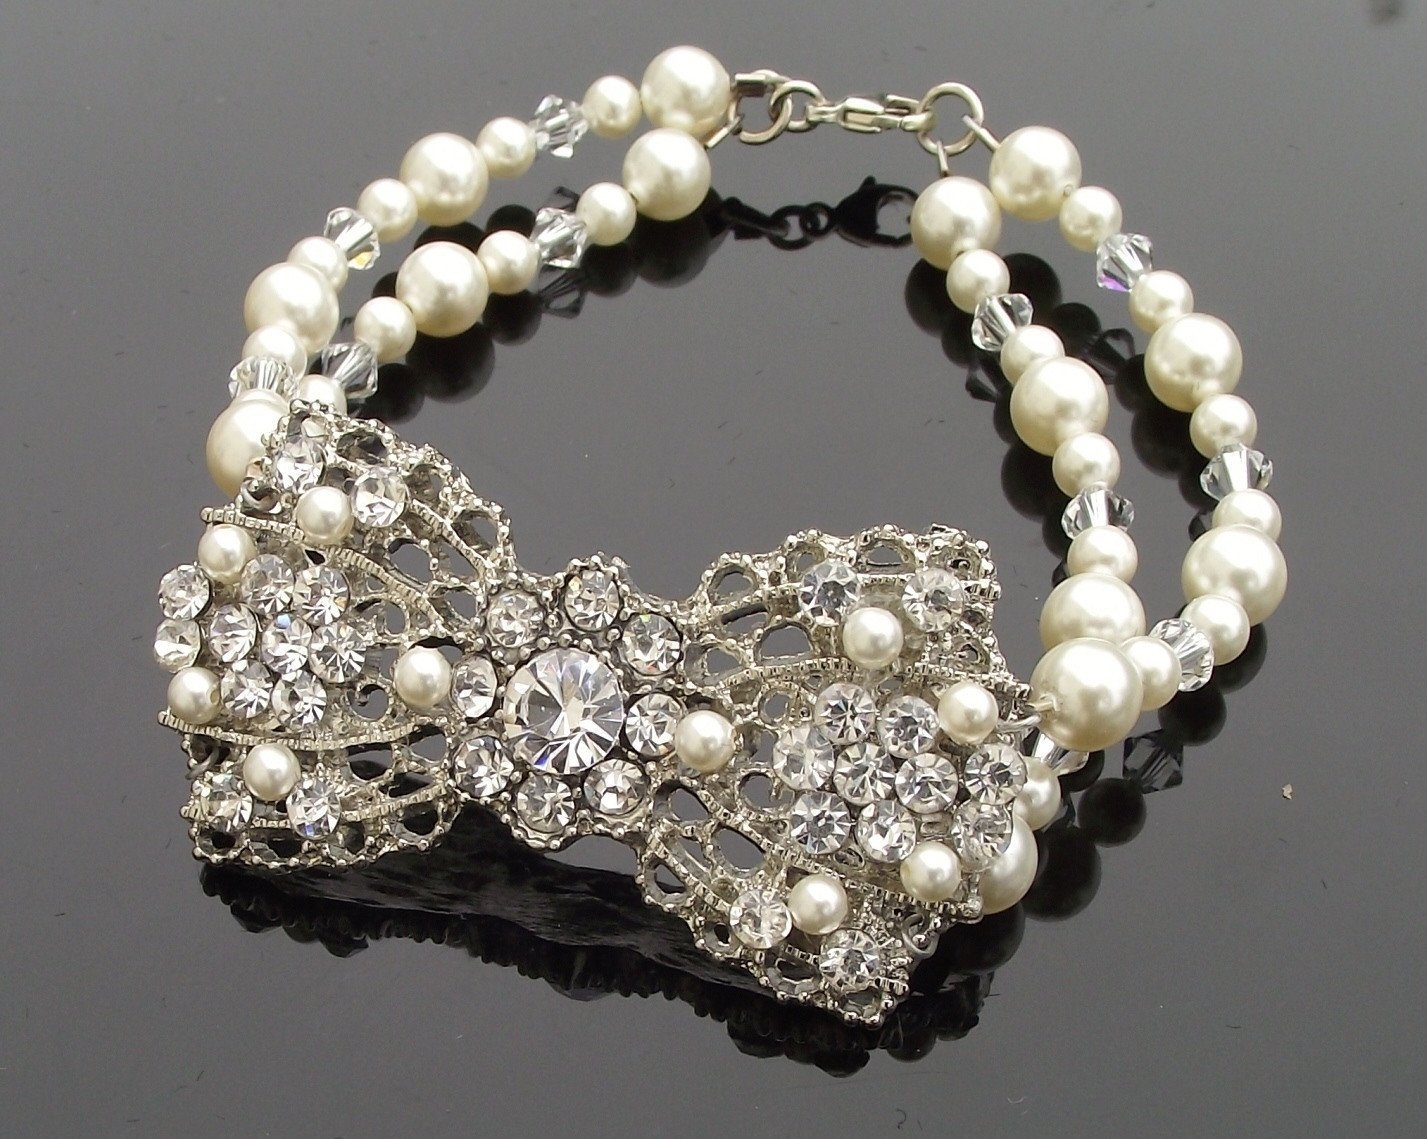 Wedding Bracelets - Pretty Bow Shaped Pearl & Crystal Wedding Bracelet, Simone